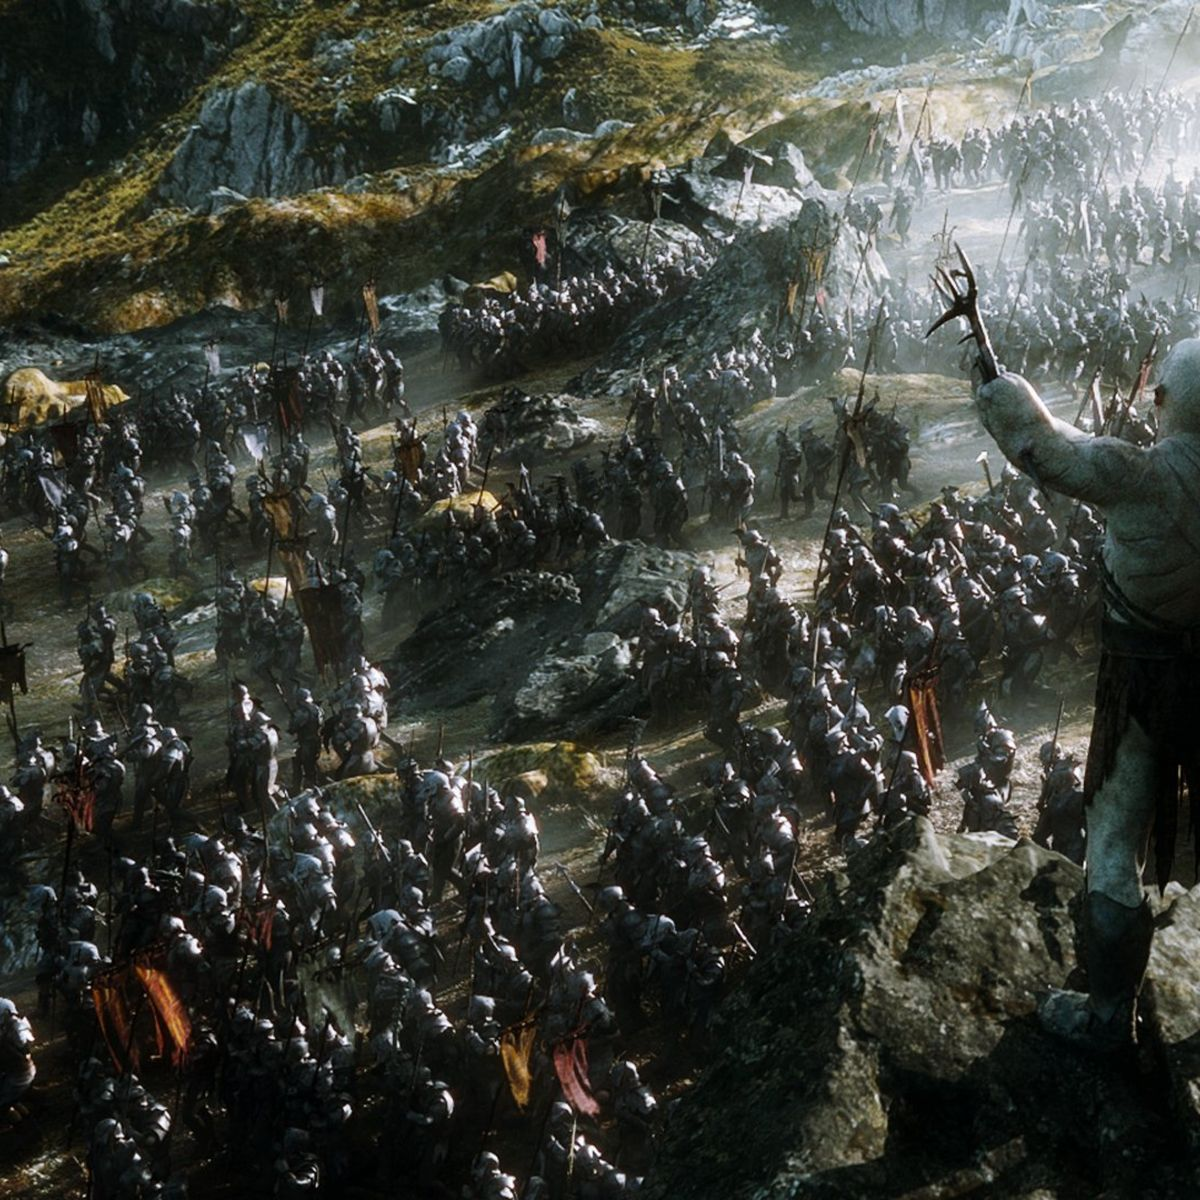 3-the-hobbit-3-the-battle-of-the-5-armies-what-to-look-forward-to.jpeg